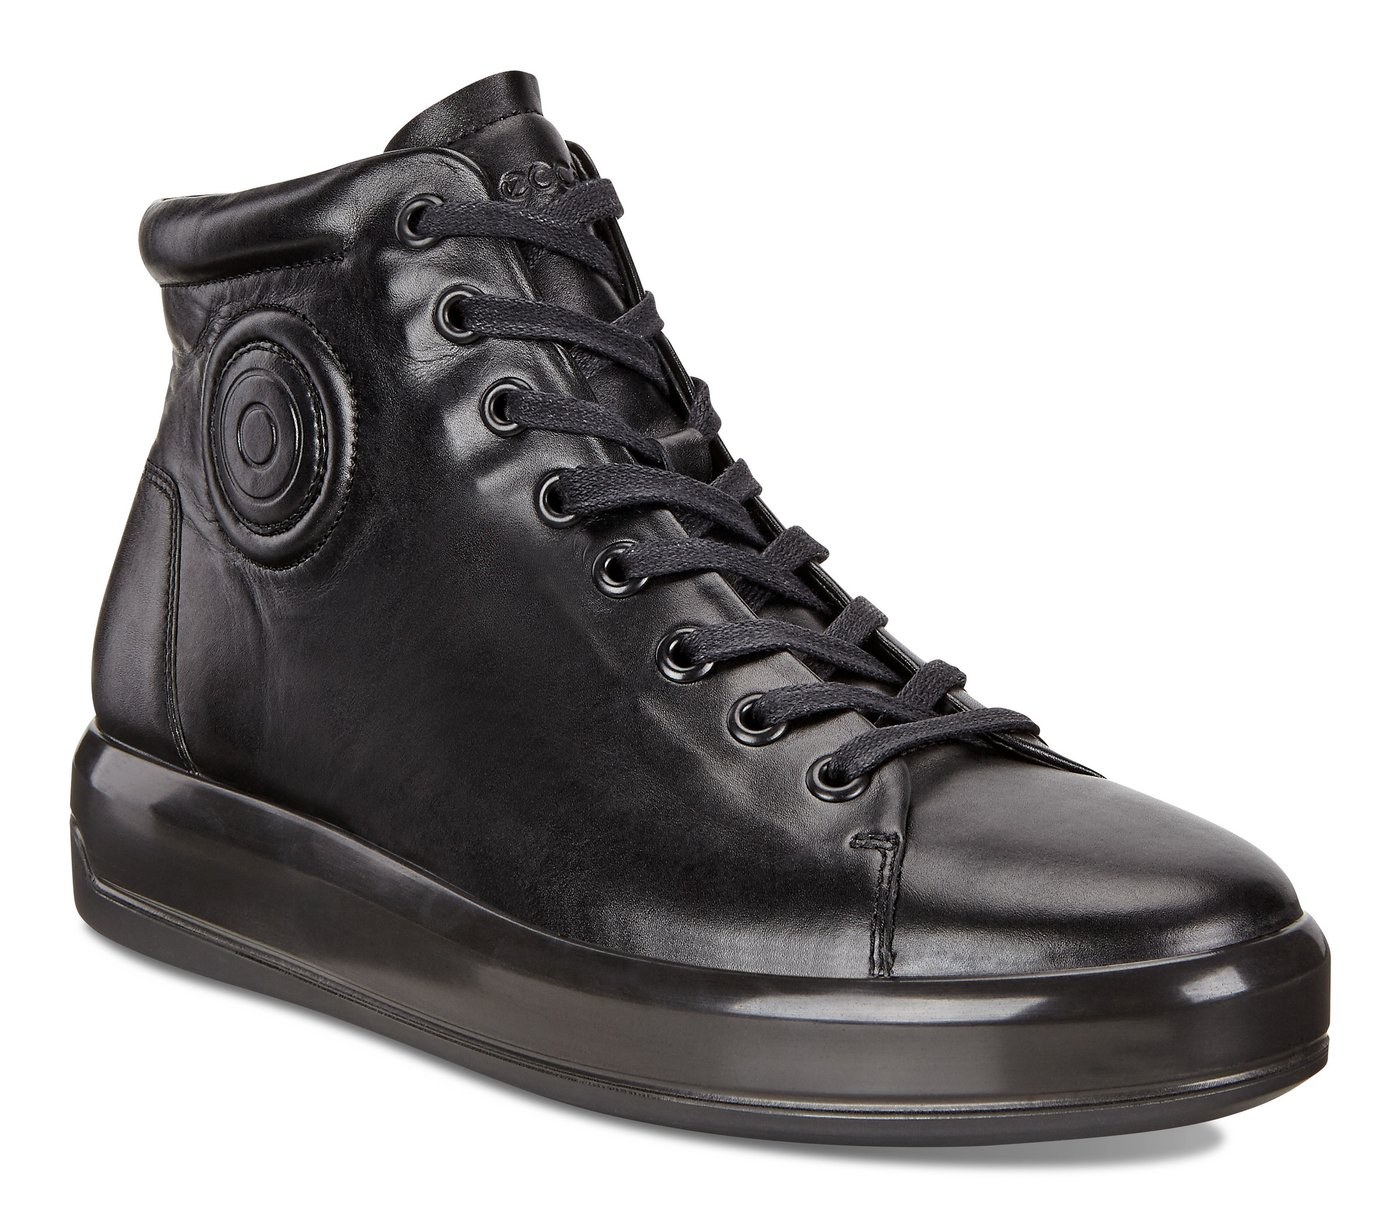 ECCO SOFT9 Patent High Top